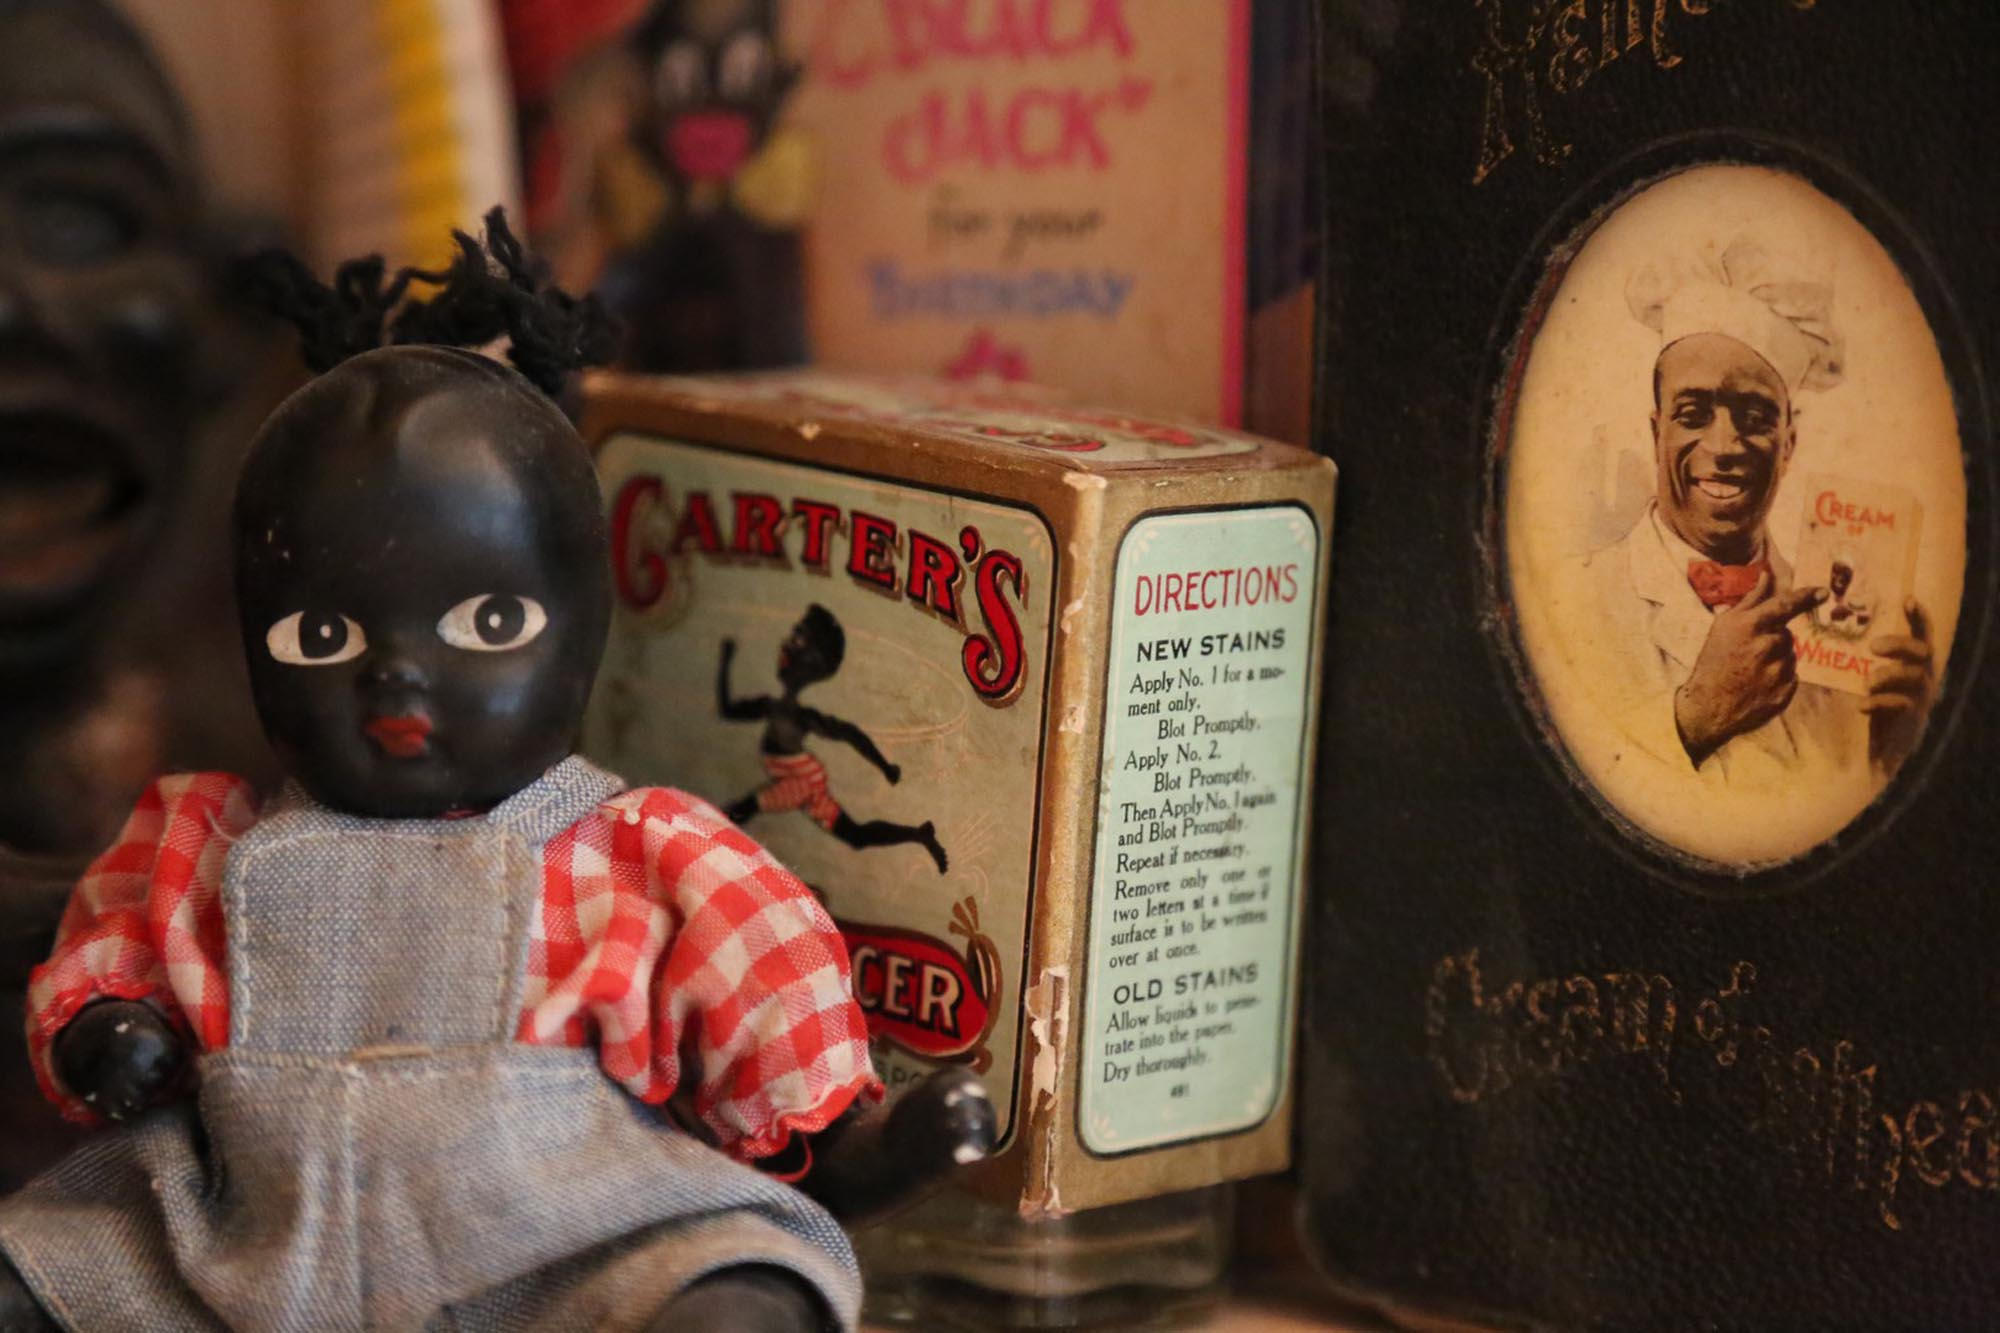 Demand for Reproduced Racist Memorabilia Grows Worldwide — A New Doc Investigates